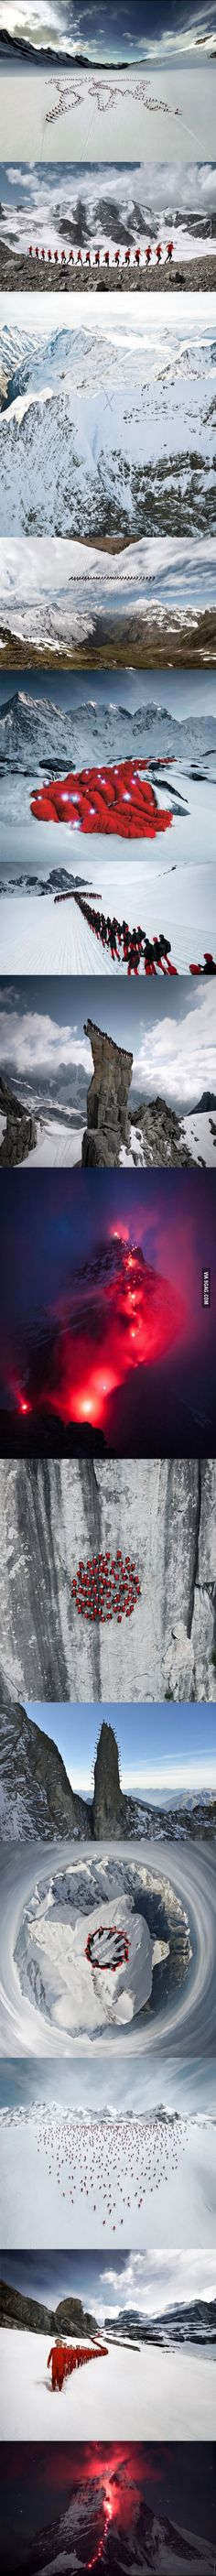 Hundreds Of Mountaineers Climb The Alps For Epic Photoshoot.